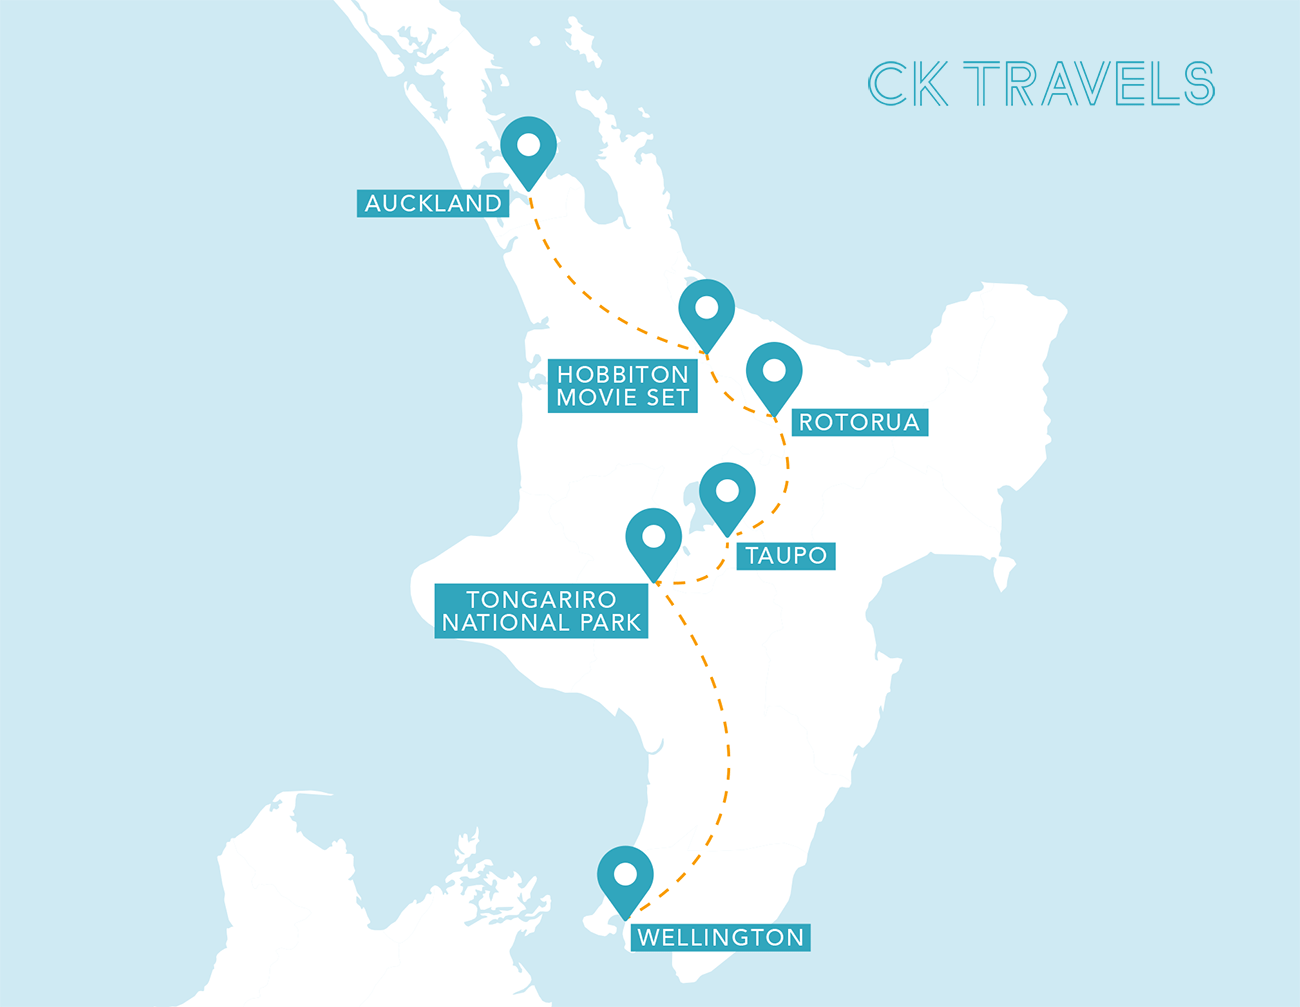 Auckland to Wellington - a 7 day / 1 week North Island road trip